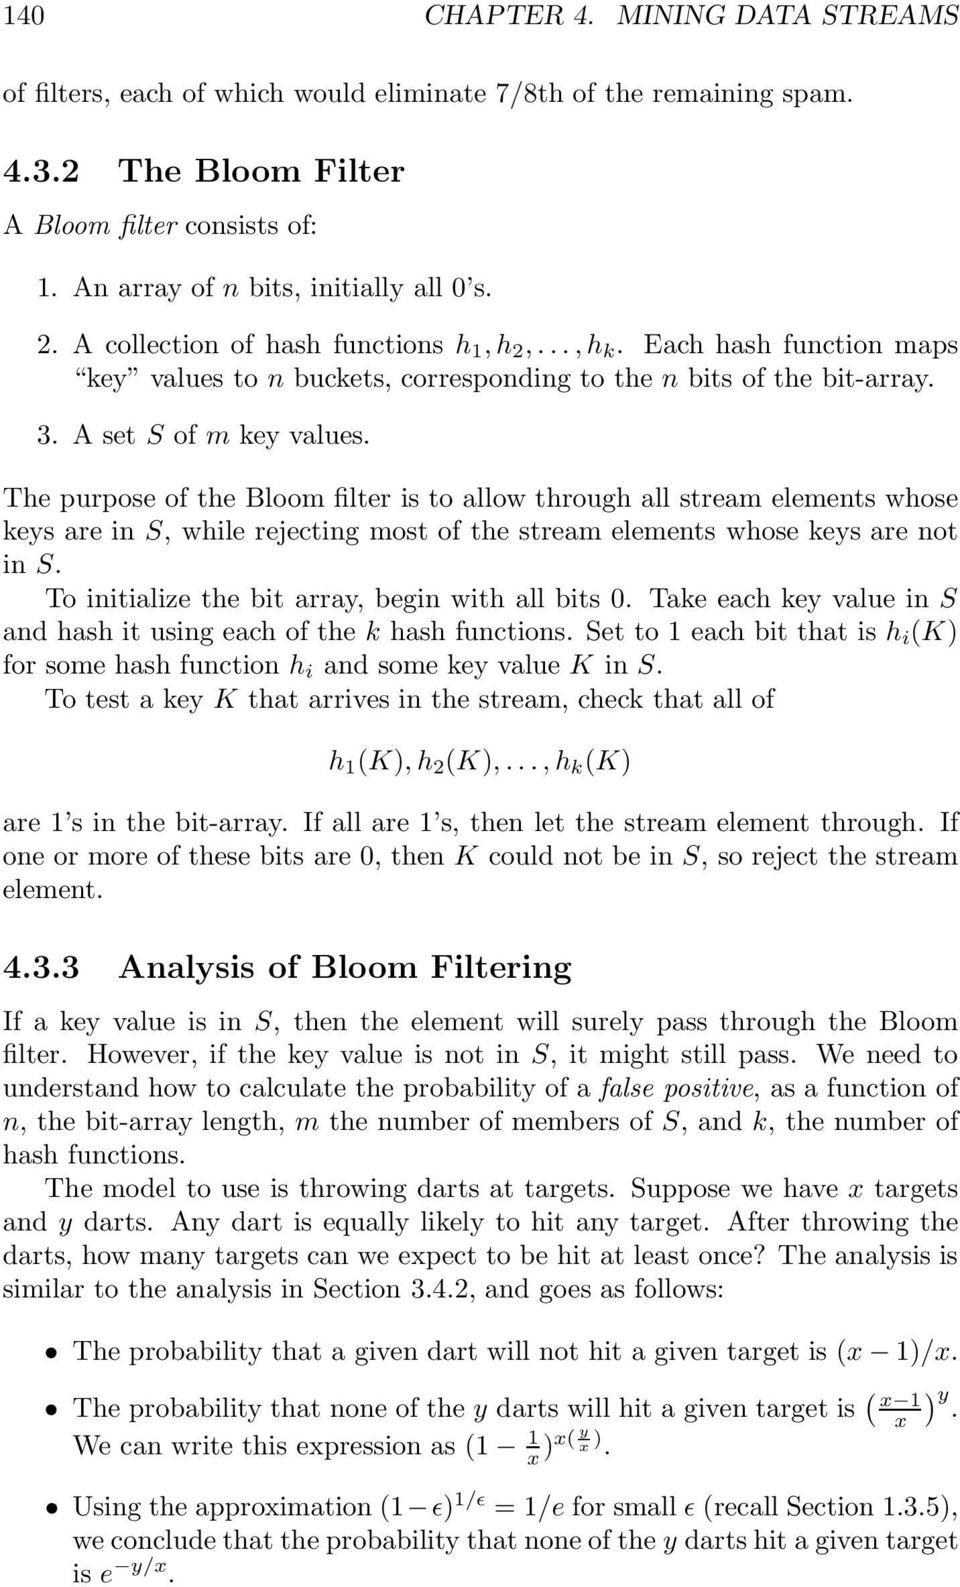 The purpose of the Bloom filter is to allow through all stream elements whose keys are in S, while rejecting most of the stream elements whose keys are not in S.